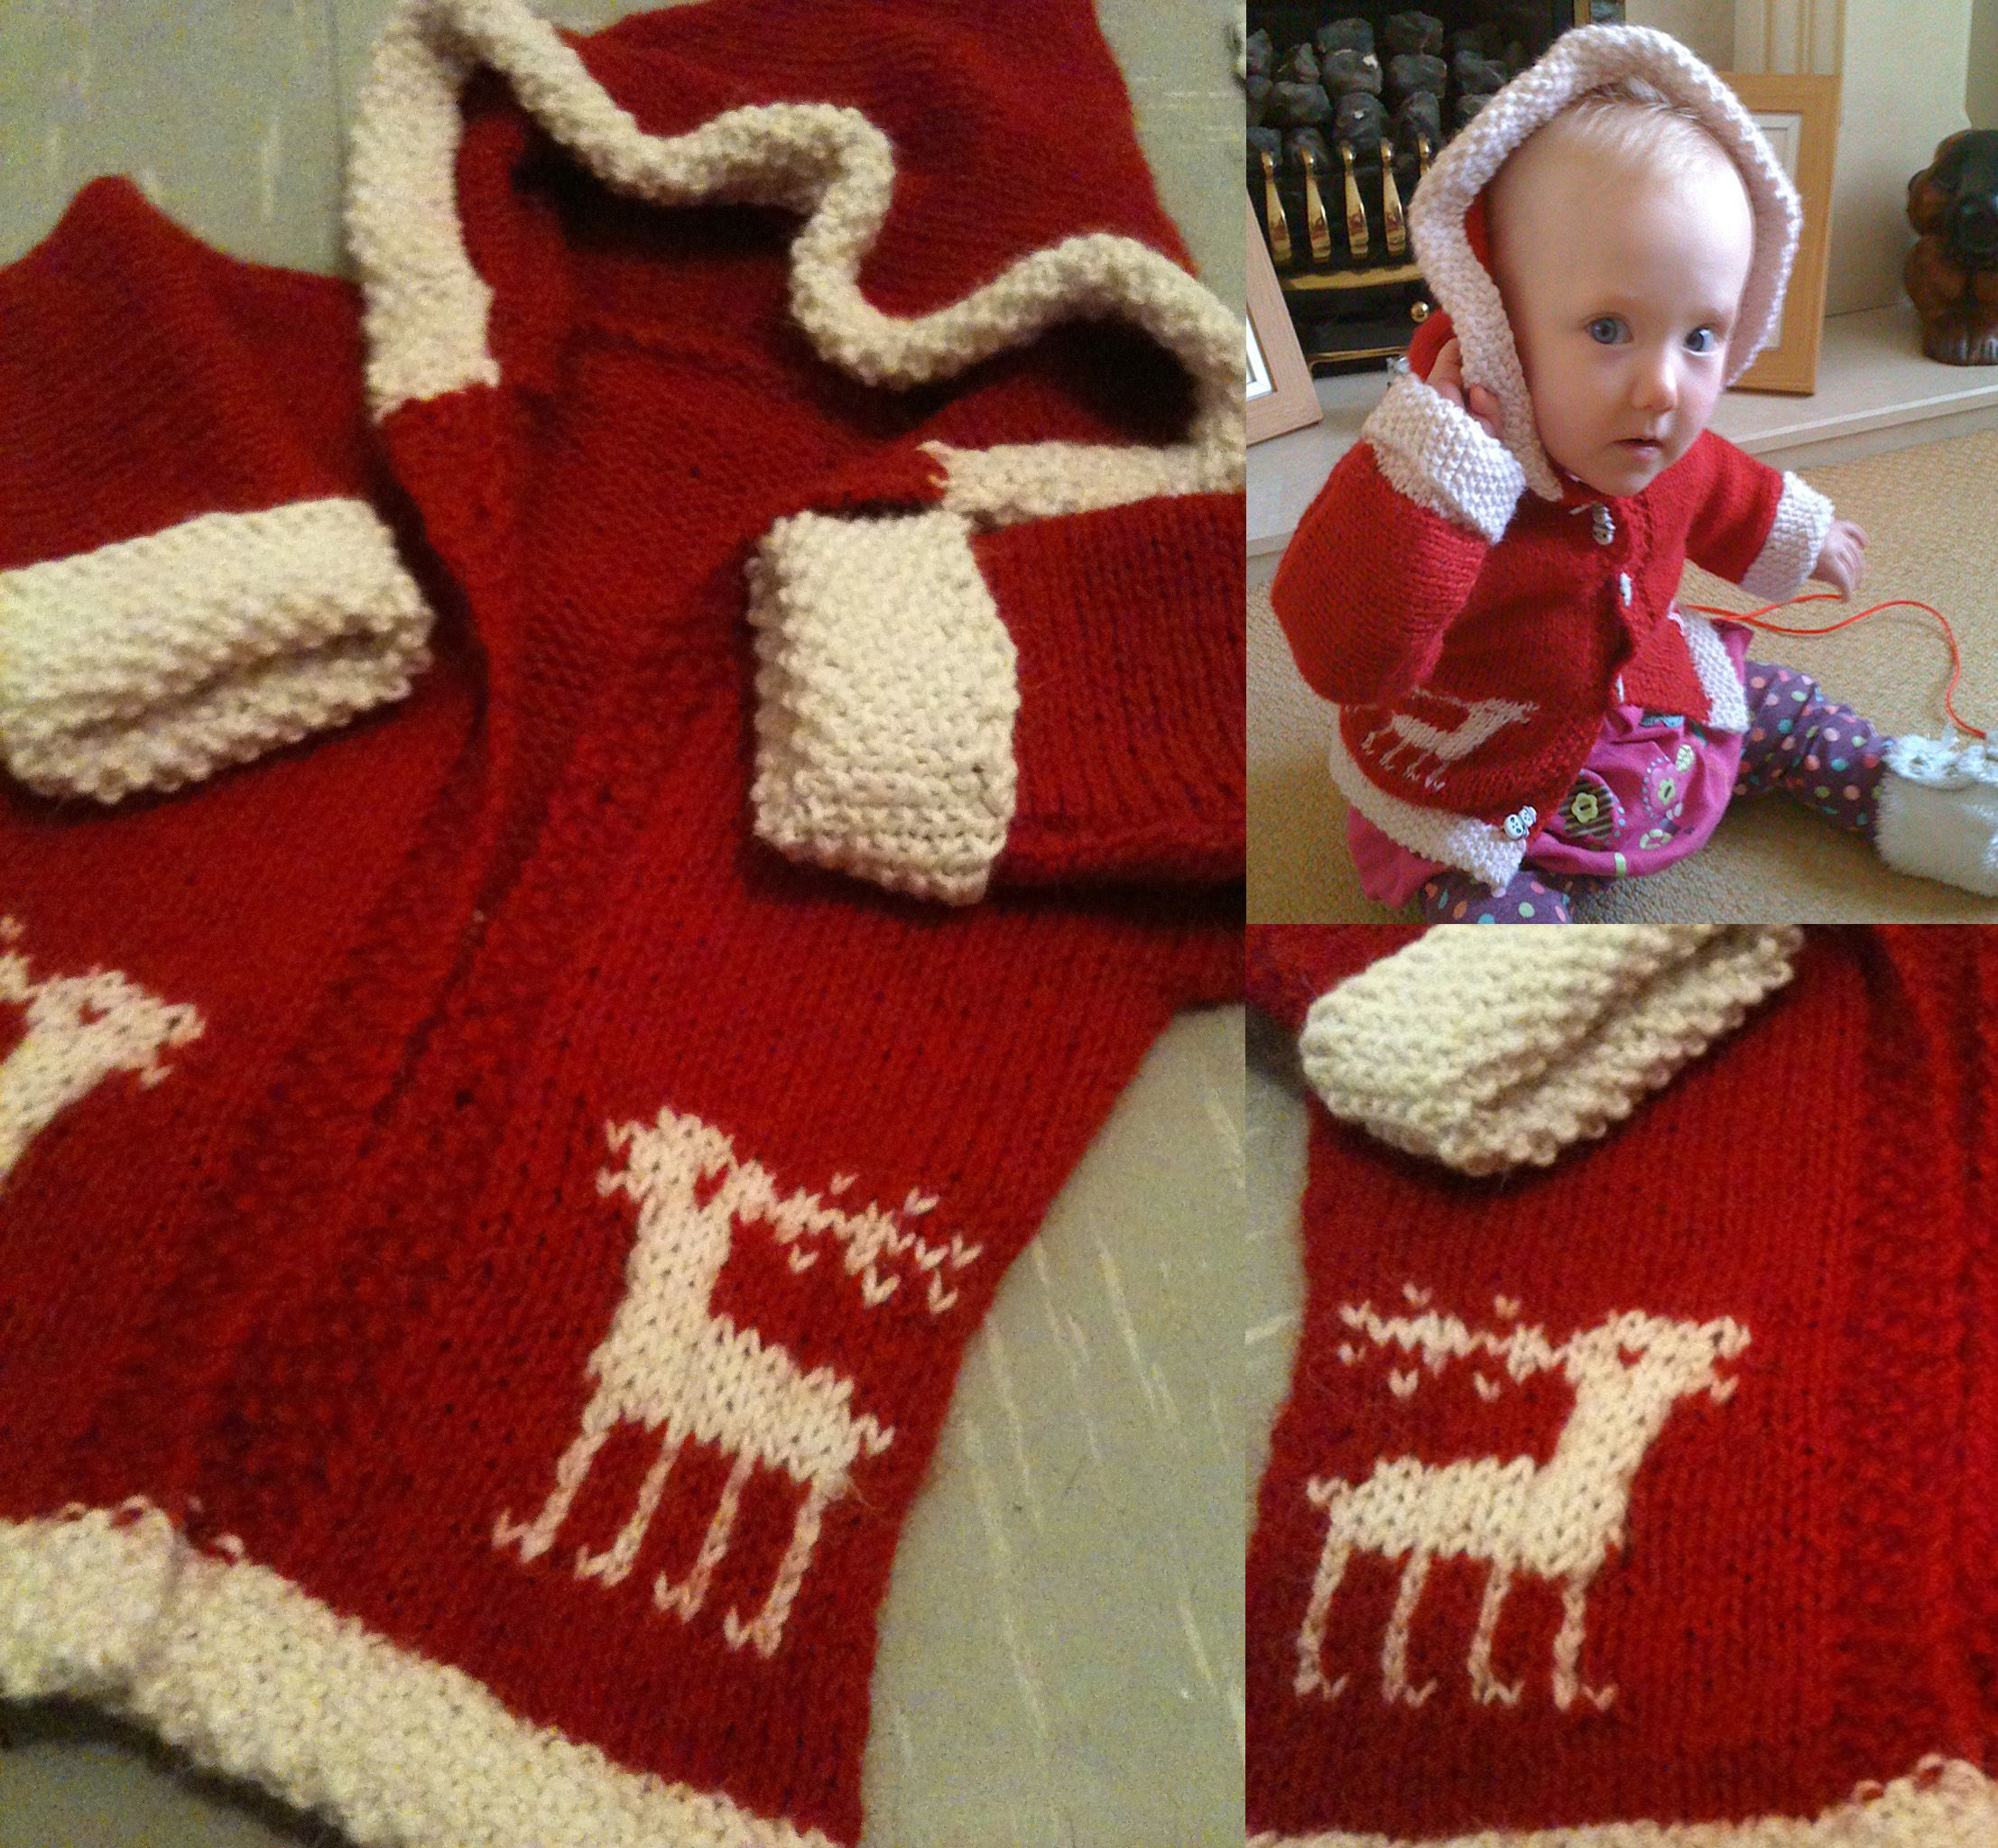 Christmas jumper knitting pattern google search baby gifts christmas jumper knitting pattern google search bankloansurffo Image collections